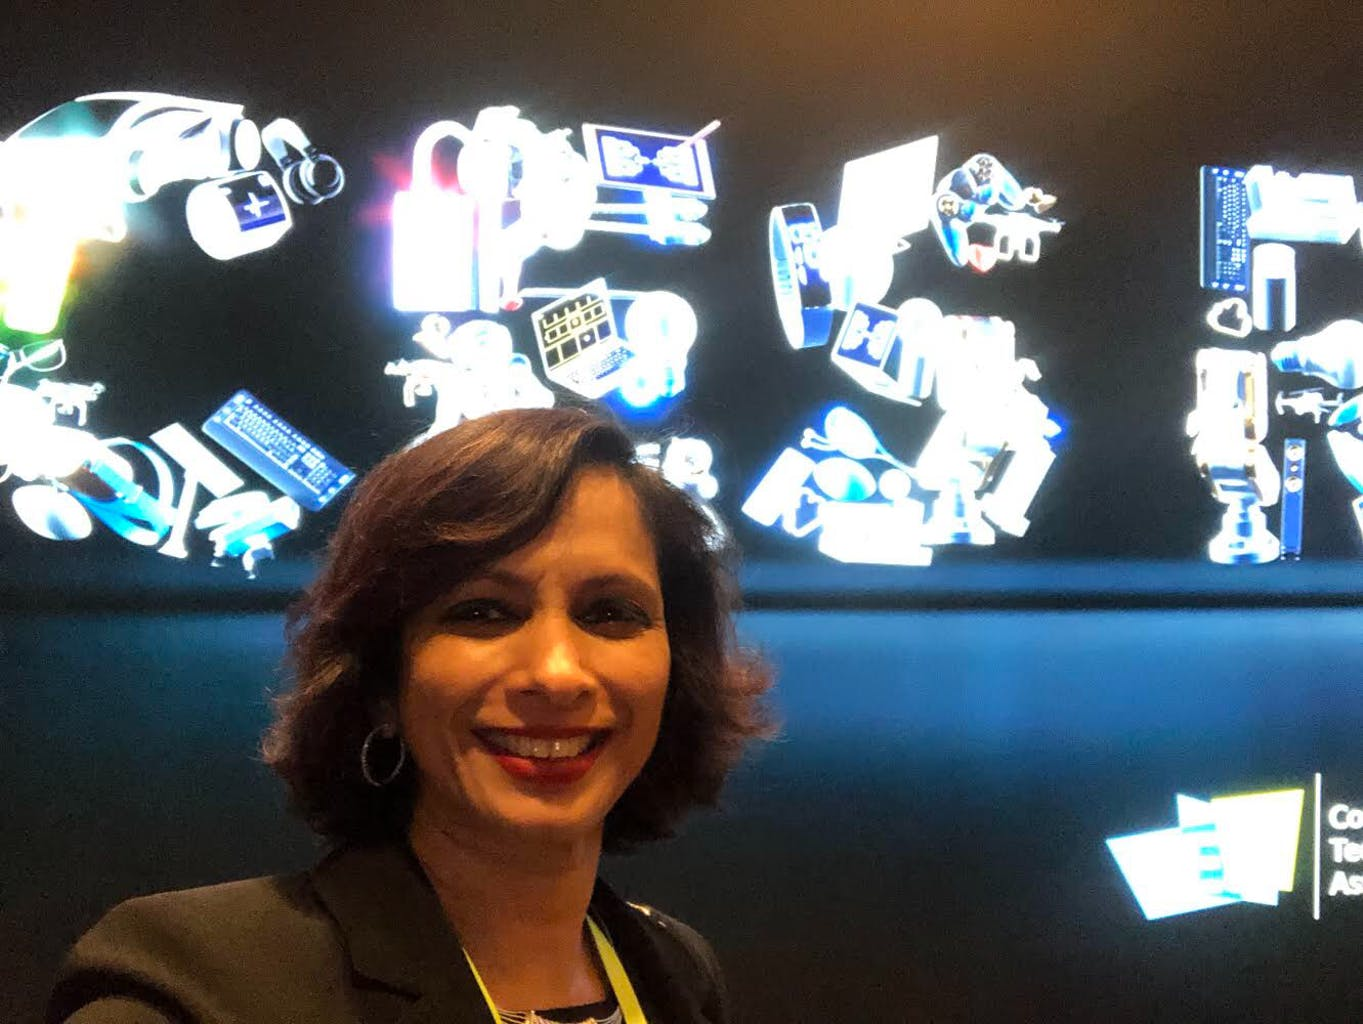 Seema Kumar for SEEMA, SEEMA Blog, CES, CES 2020. Consumer Electronics Show, Seema magazine, Seema network, Seema empowering Indian women leaders, SEEMA Tech